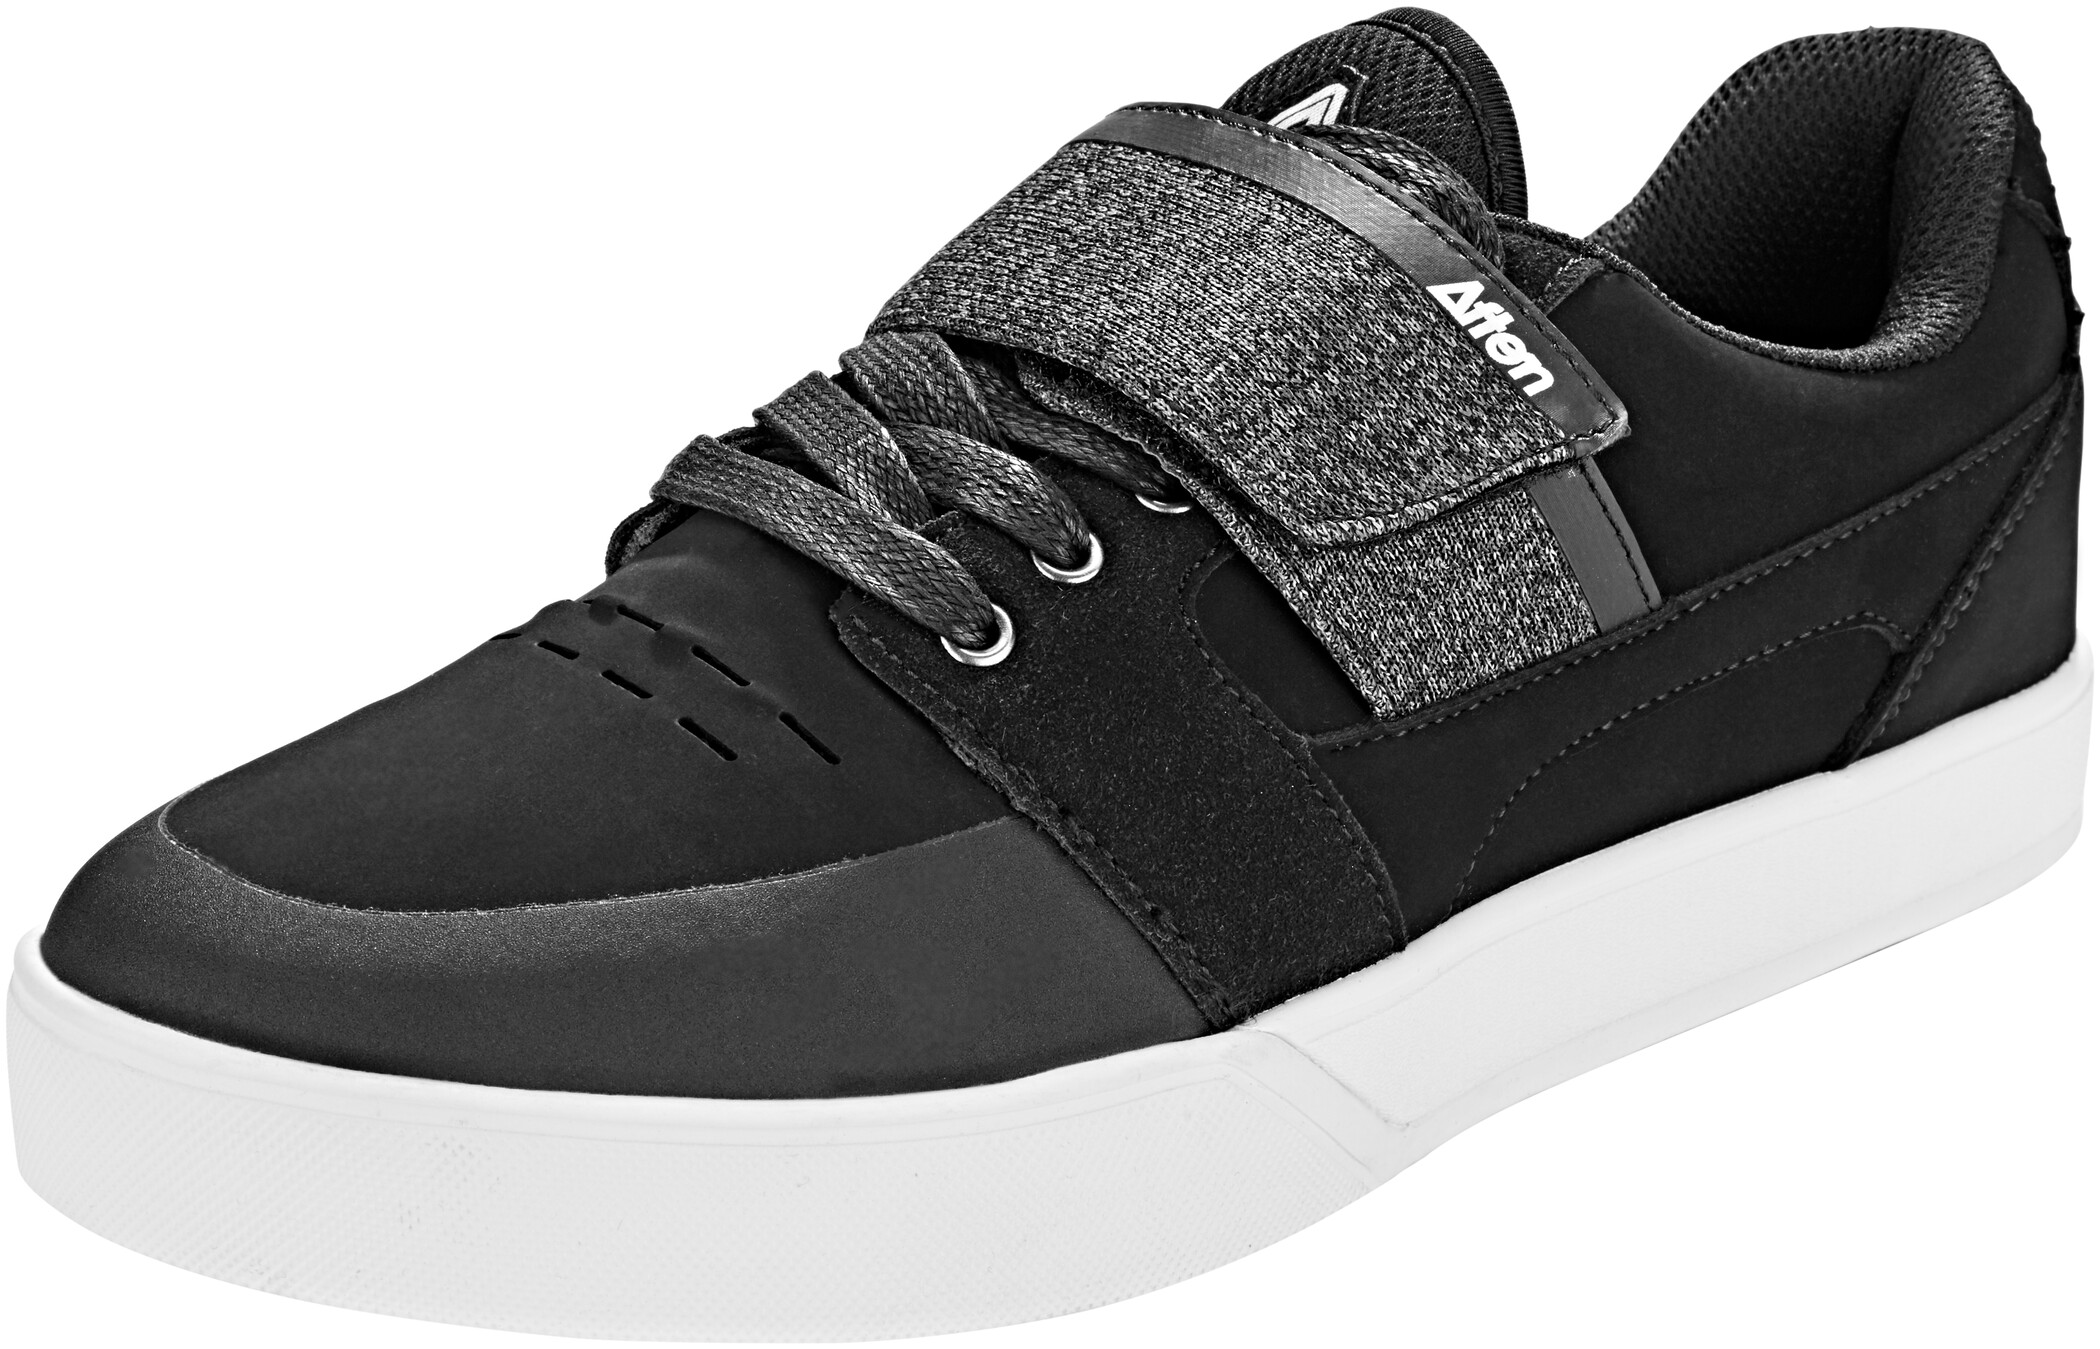 Afton Shoes Vectal Clipless Shoes Men, black/heathered (2019) | Sko